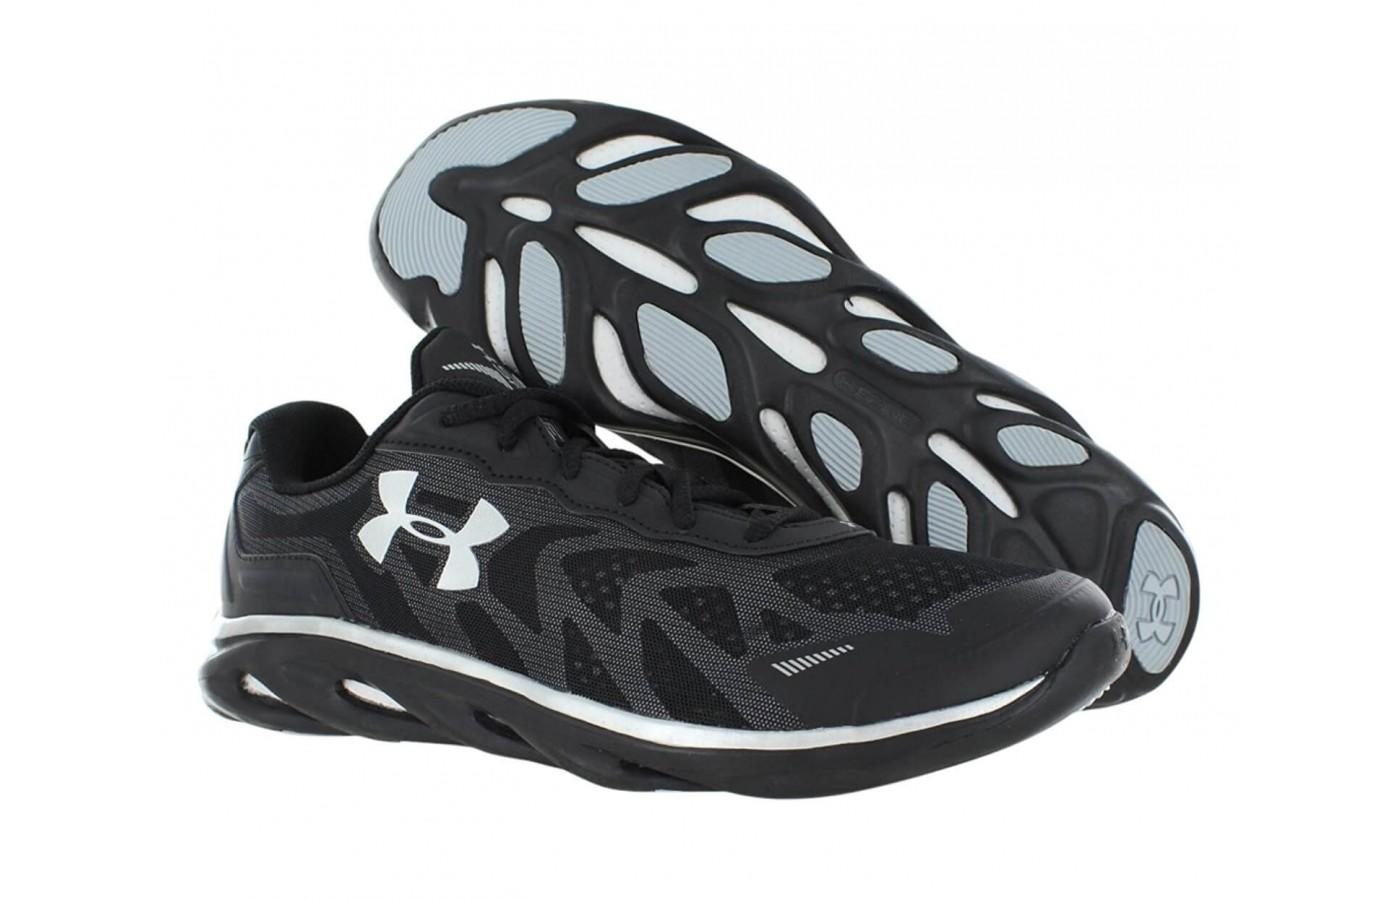 The solid rubber outsole of the Under Armour Spine Venom 2.